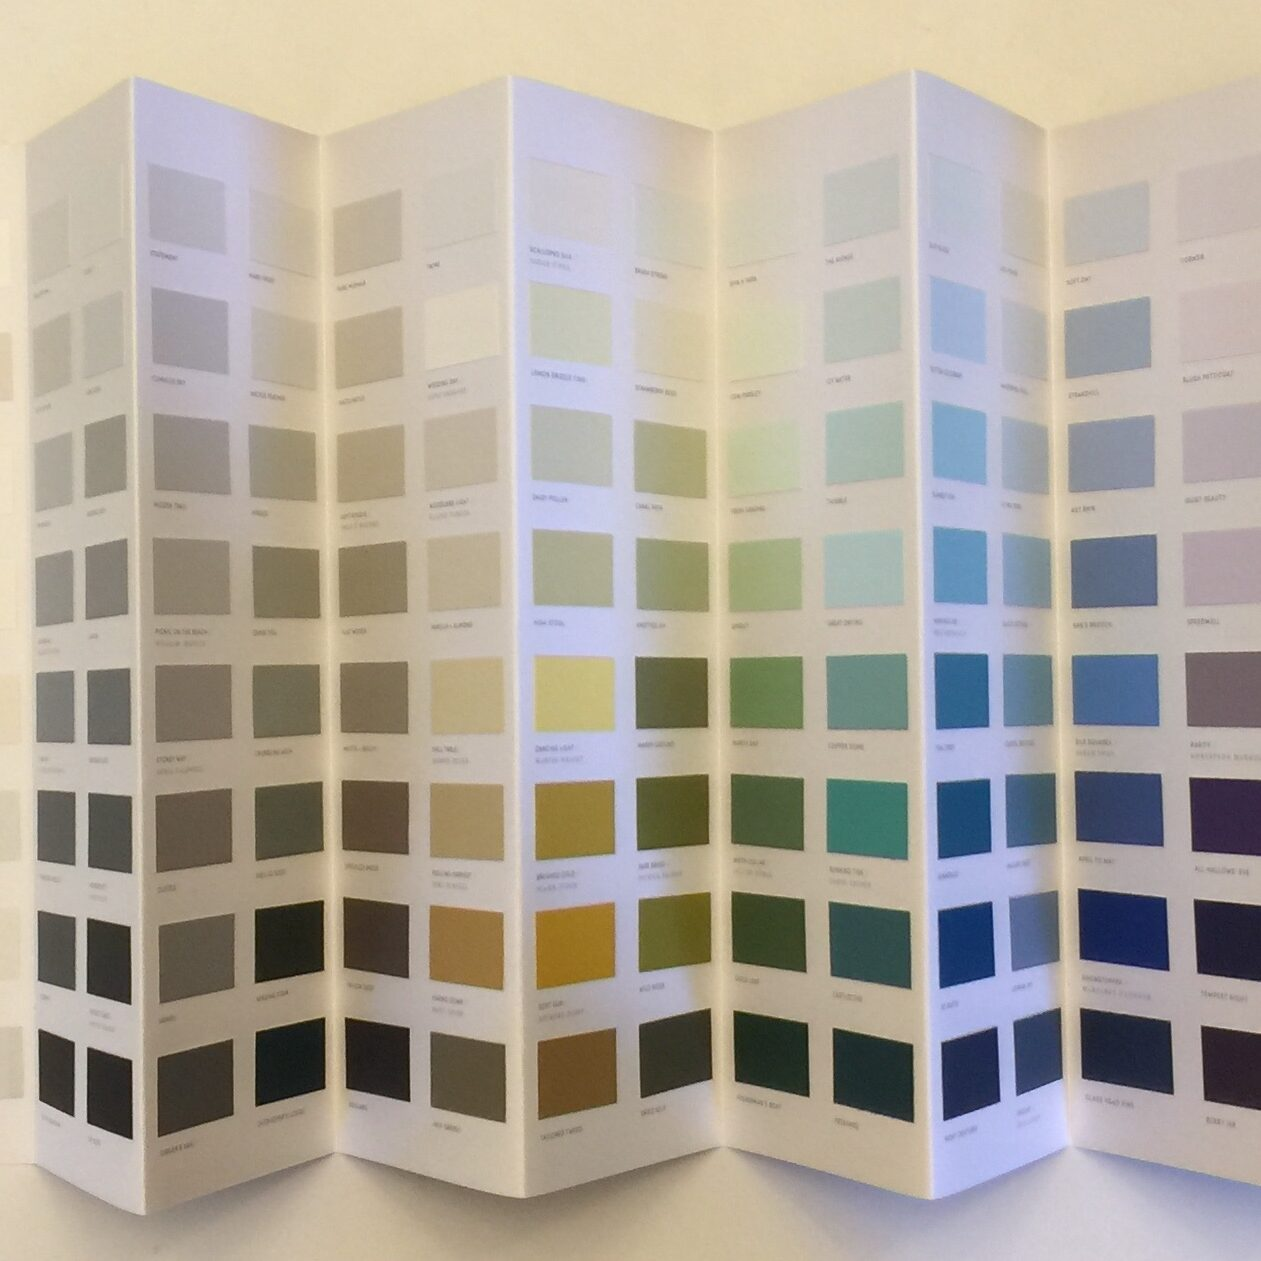 Curator Paint Collection